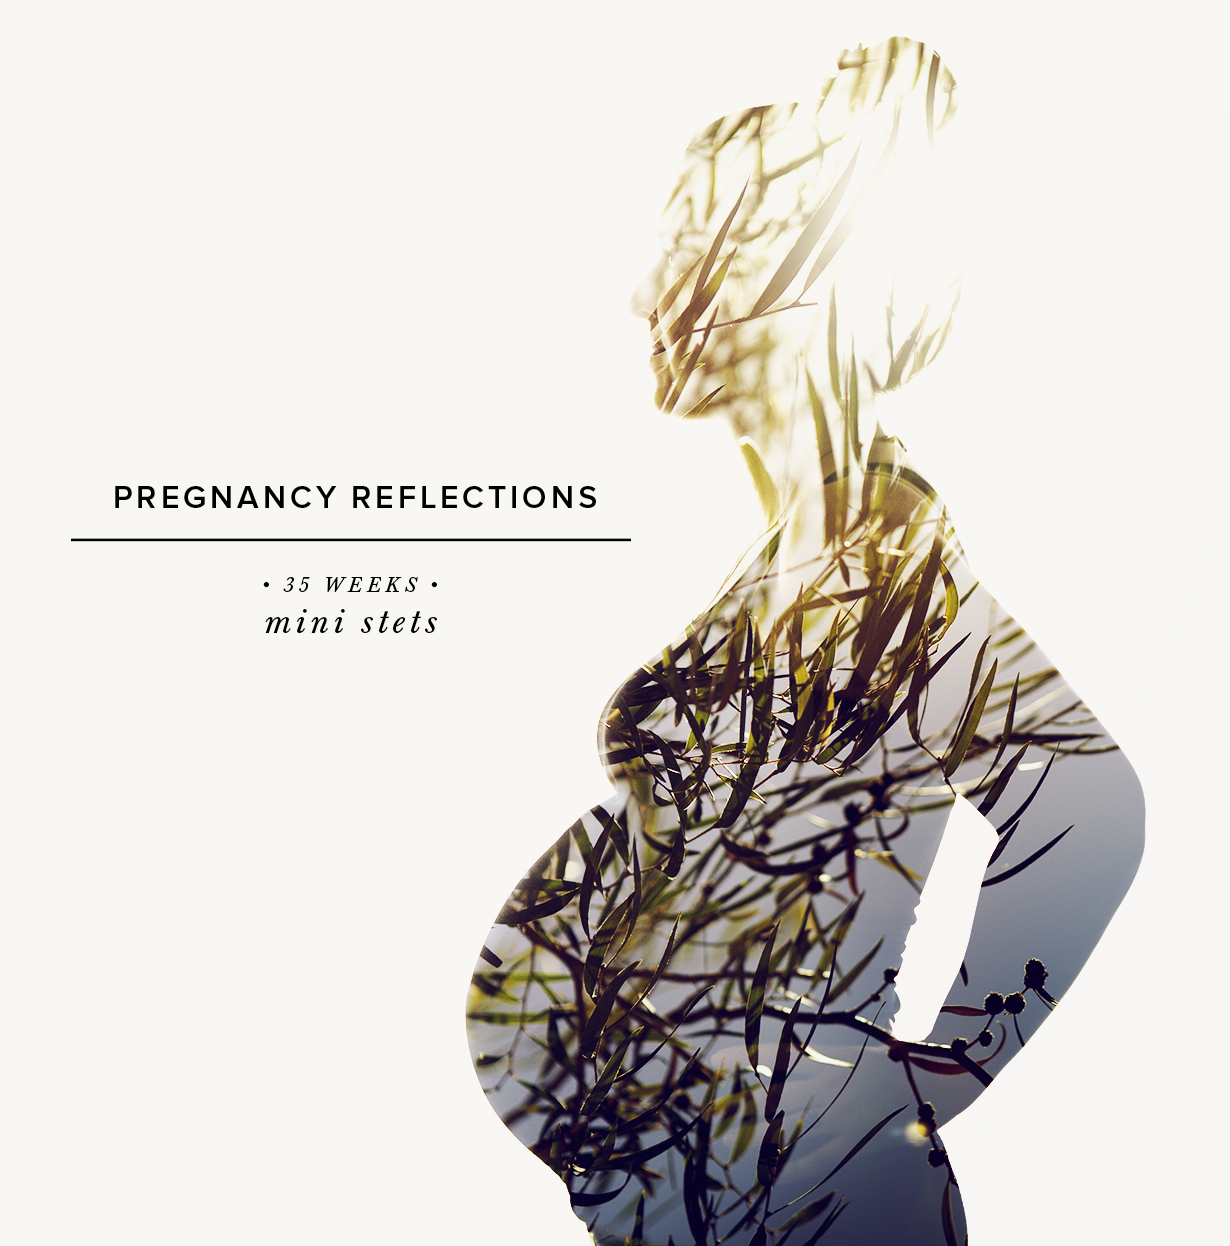 mstetson 35 weeks pregnancy reflections